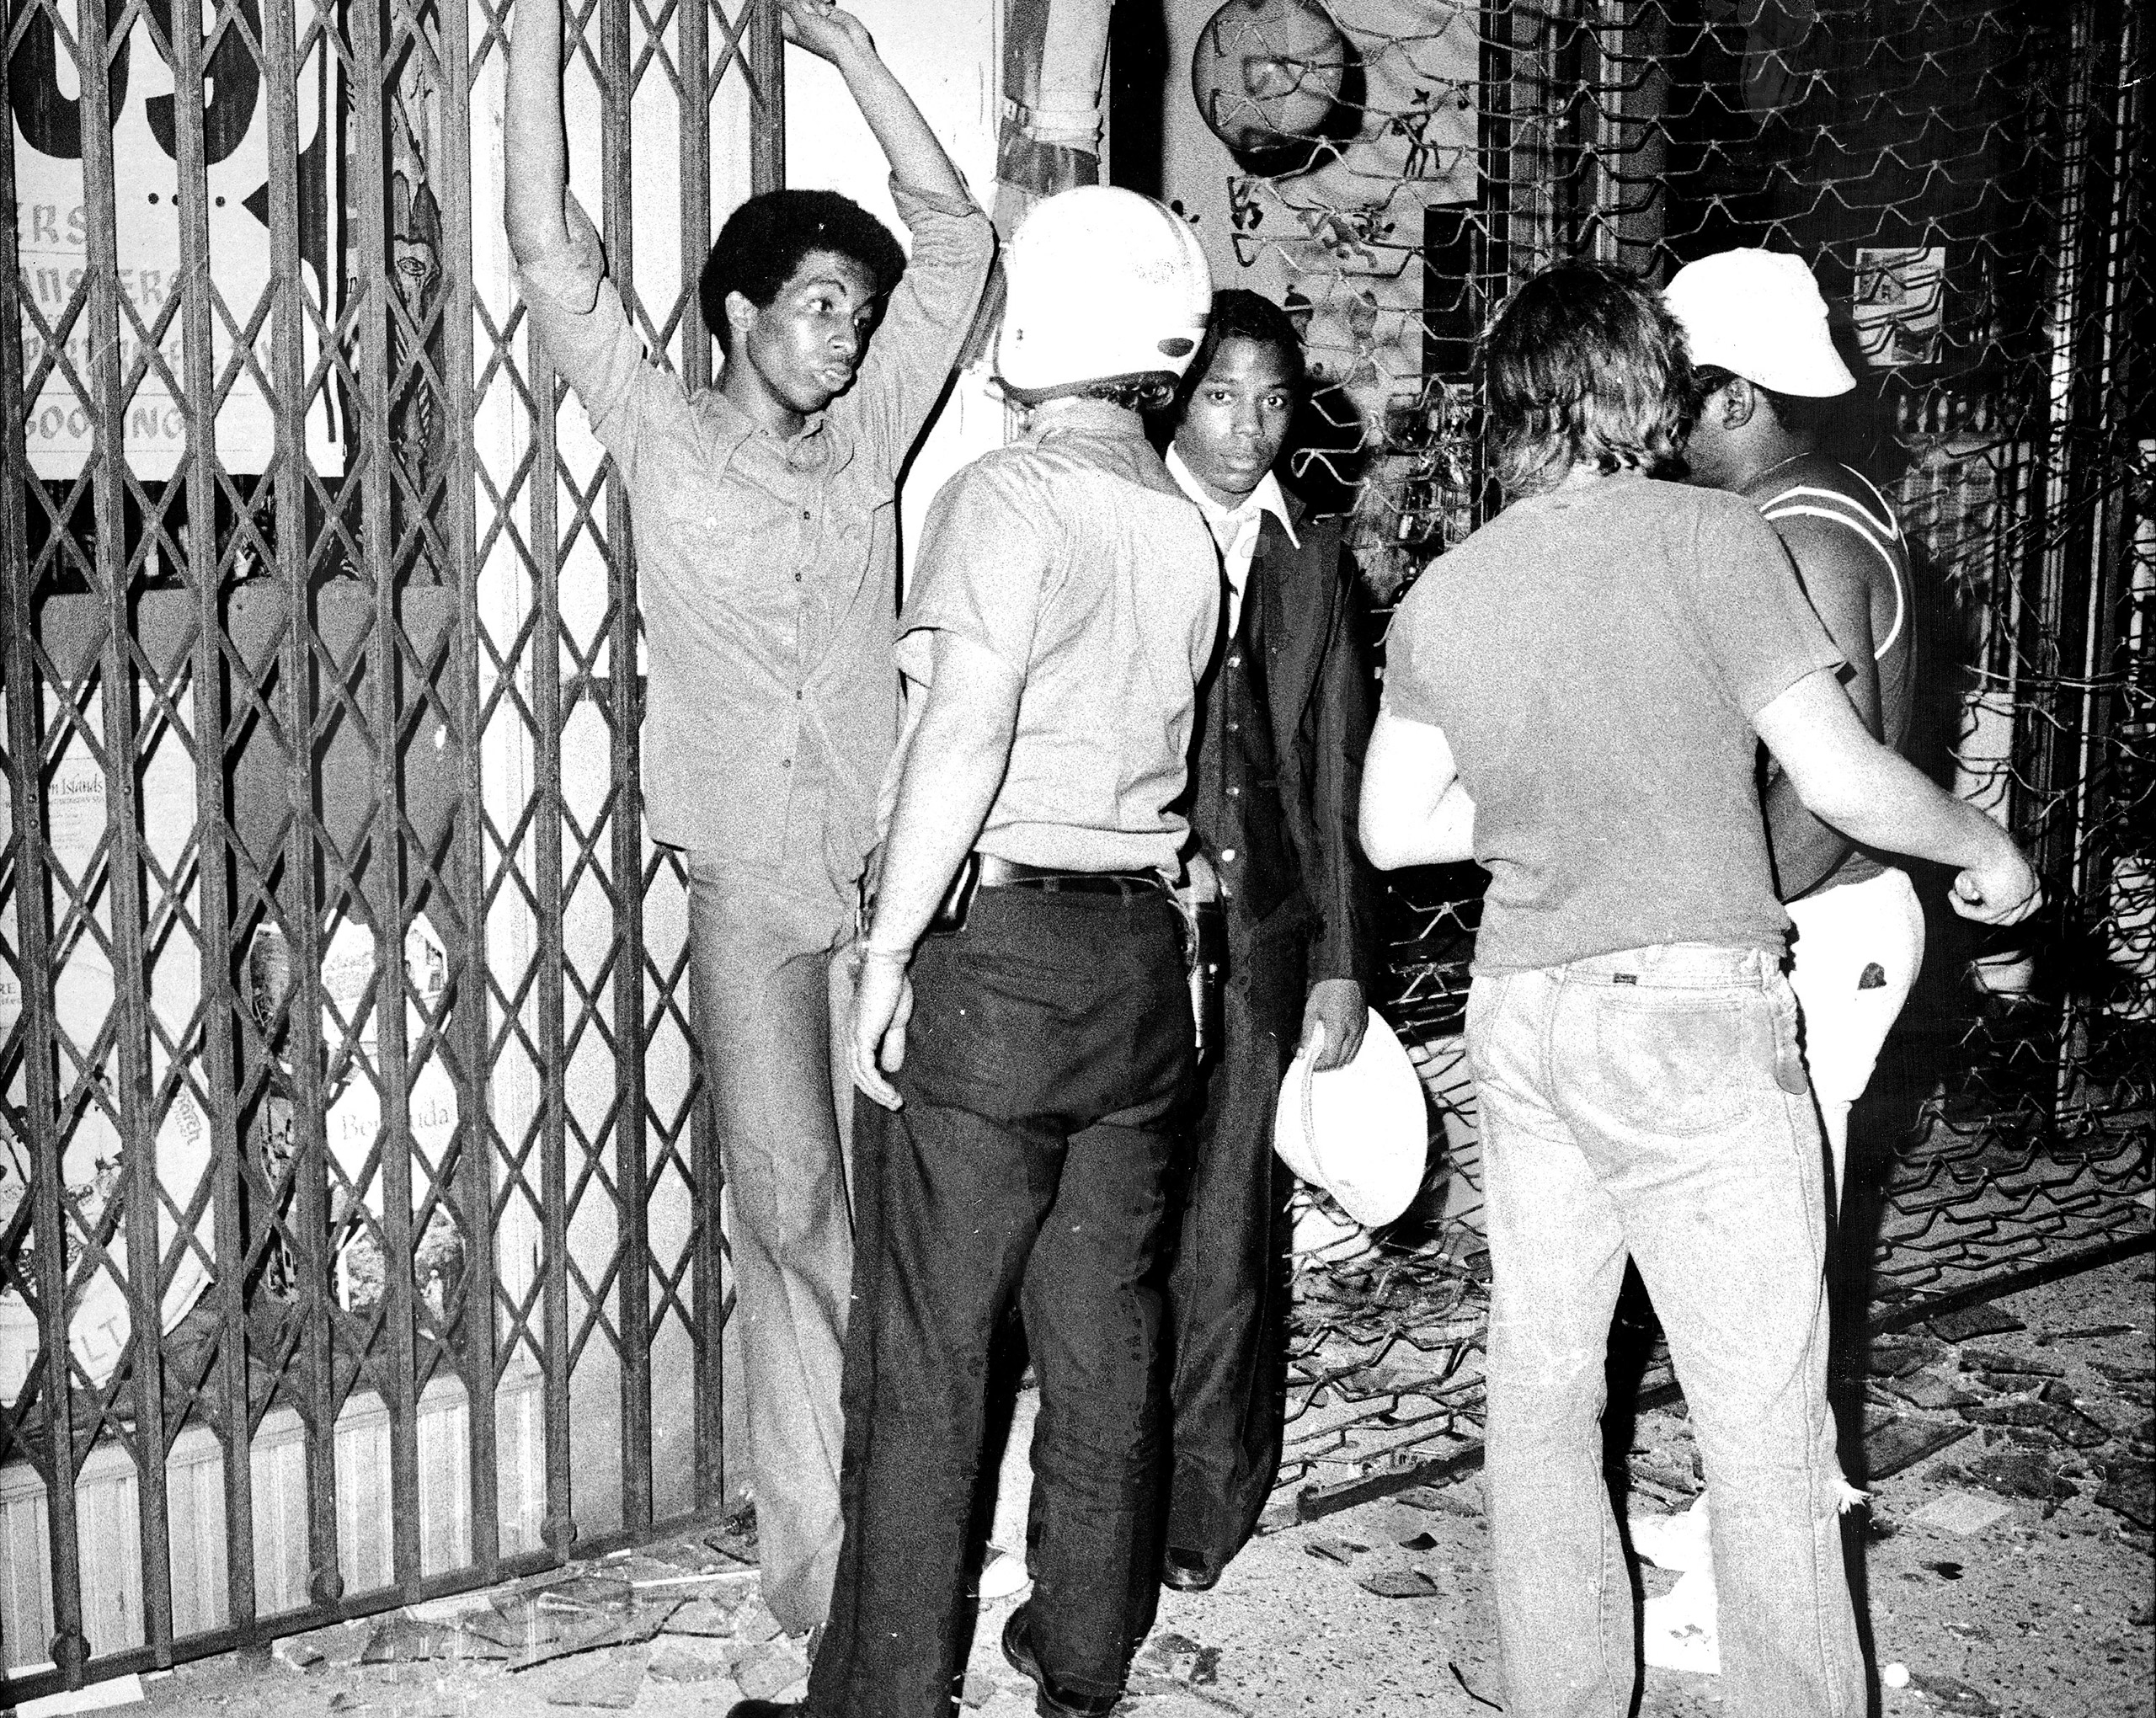 Cops contain suspected looters at Grand Concourse and Fordham Road in the Bronx during the blackout of July 1977.